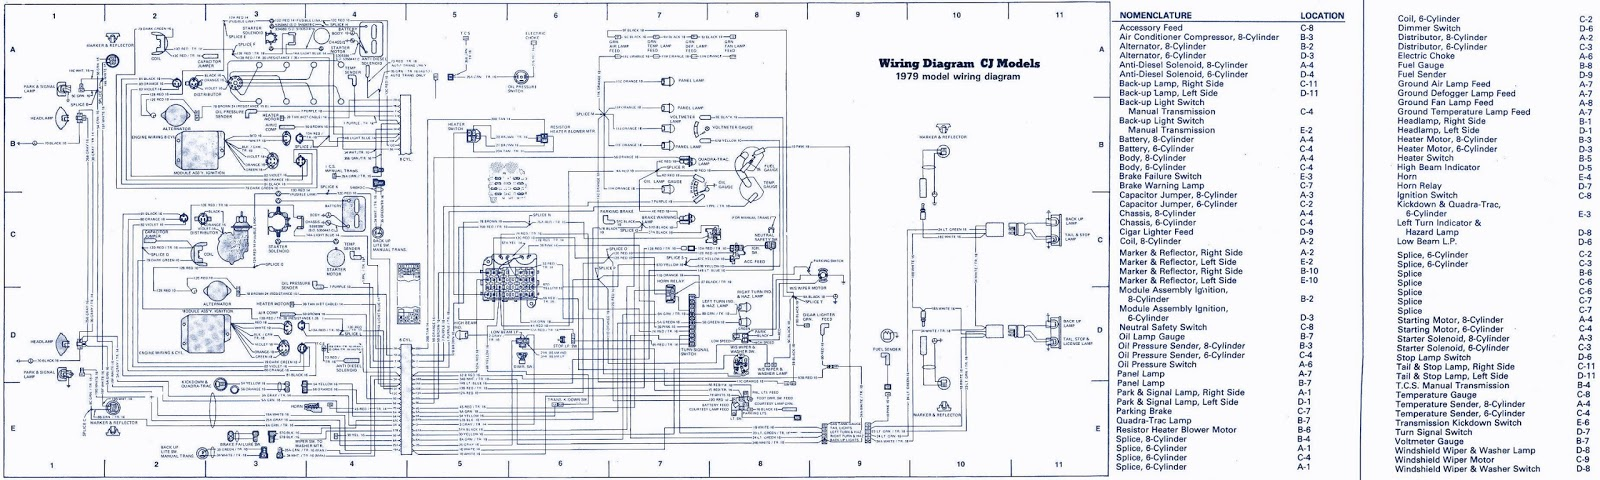 1979+Jeep+CJ+Models+Elecrical+Wiring+Diagram 1980 jeep cj5 wiring diagram electrical wiring diagrams for 1985 cj7 wiring diagram at n-0.co